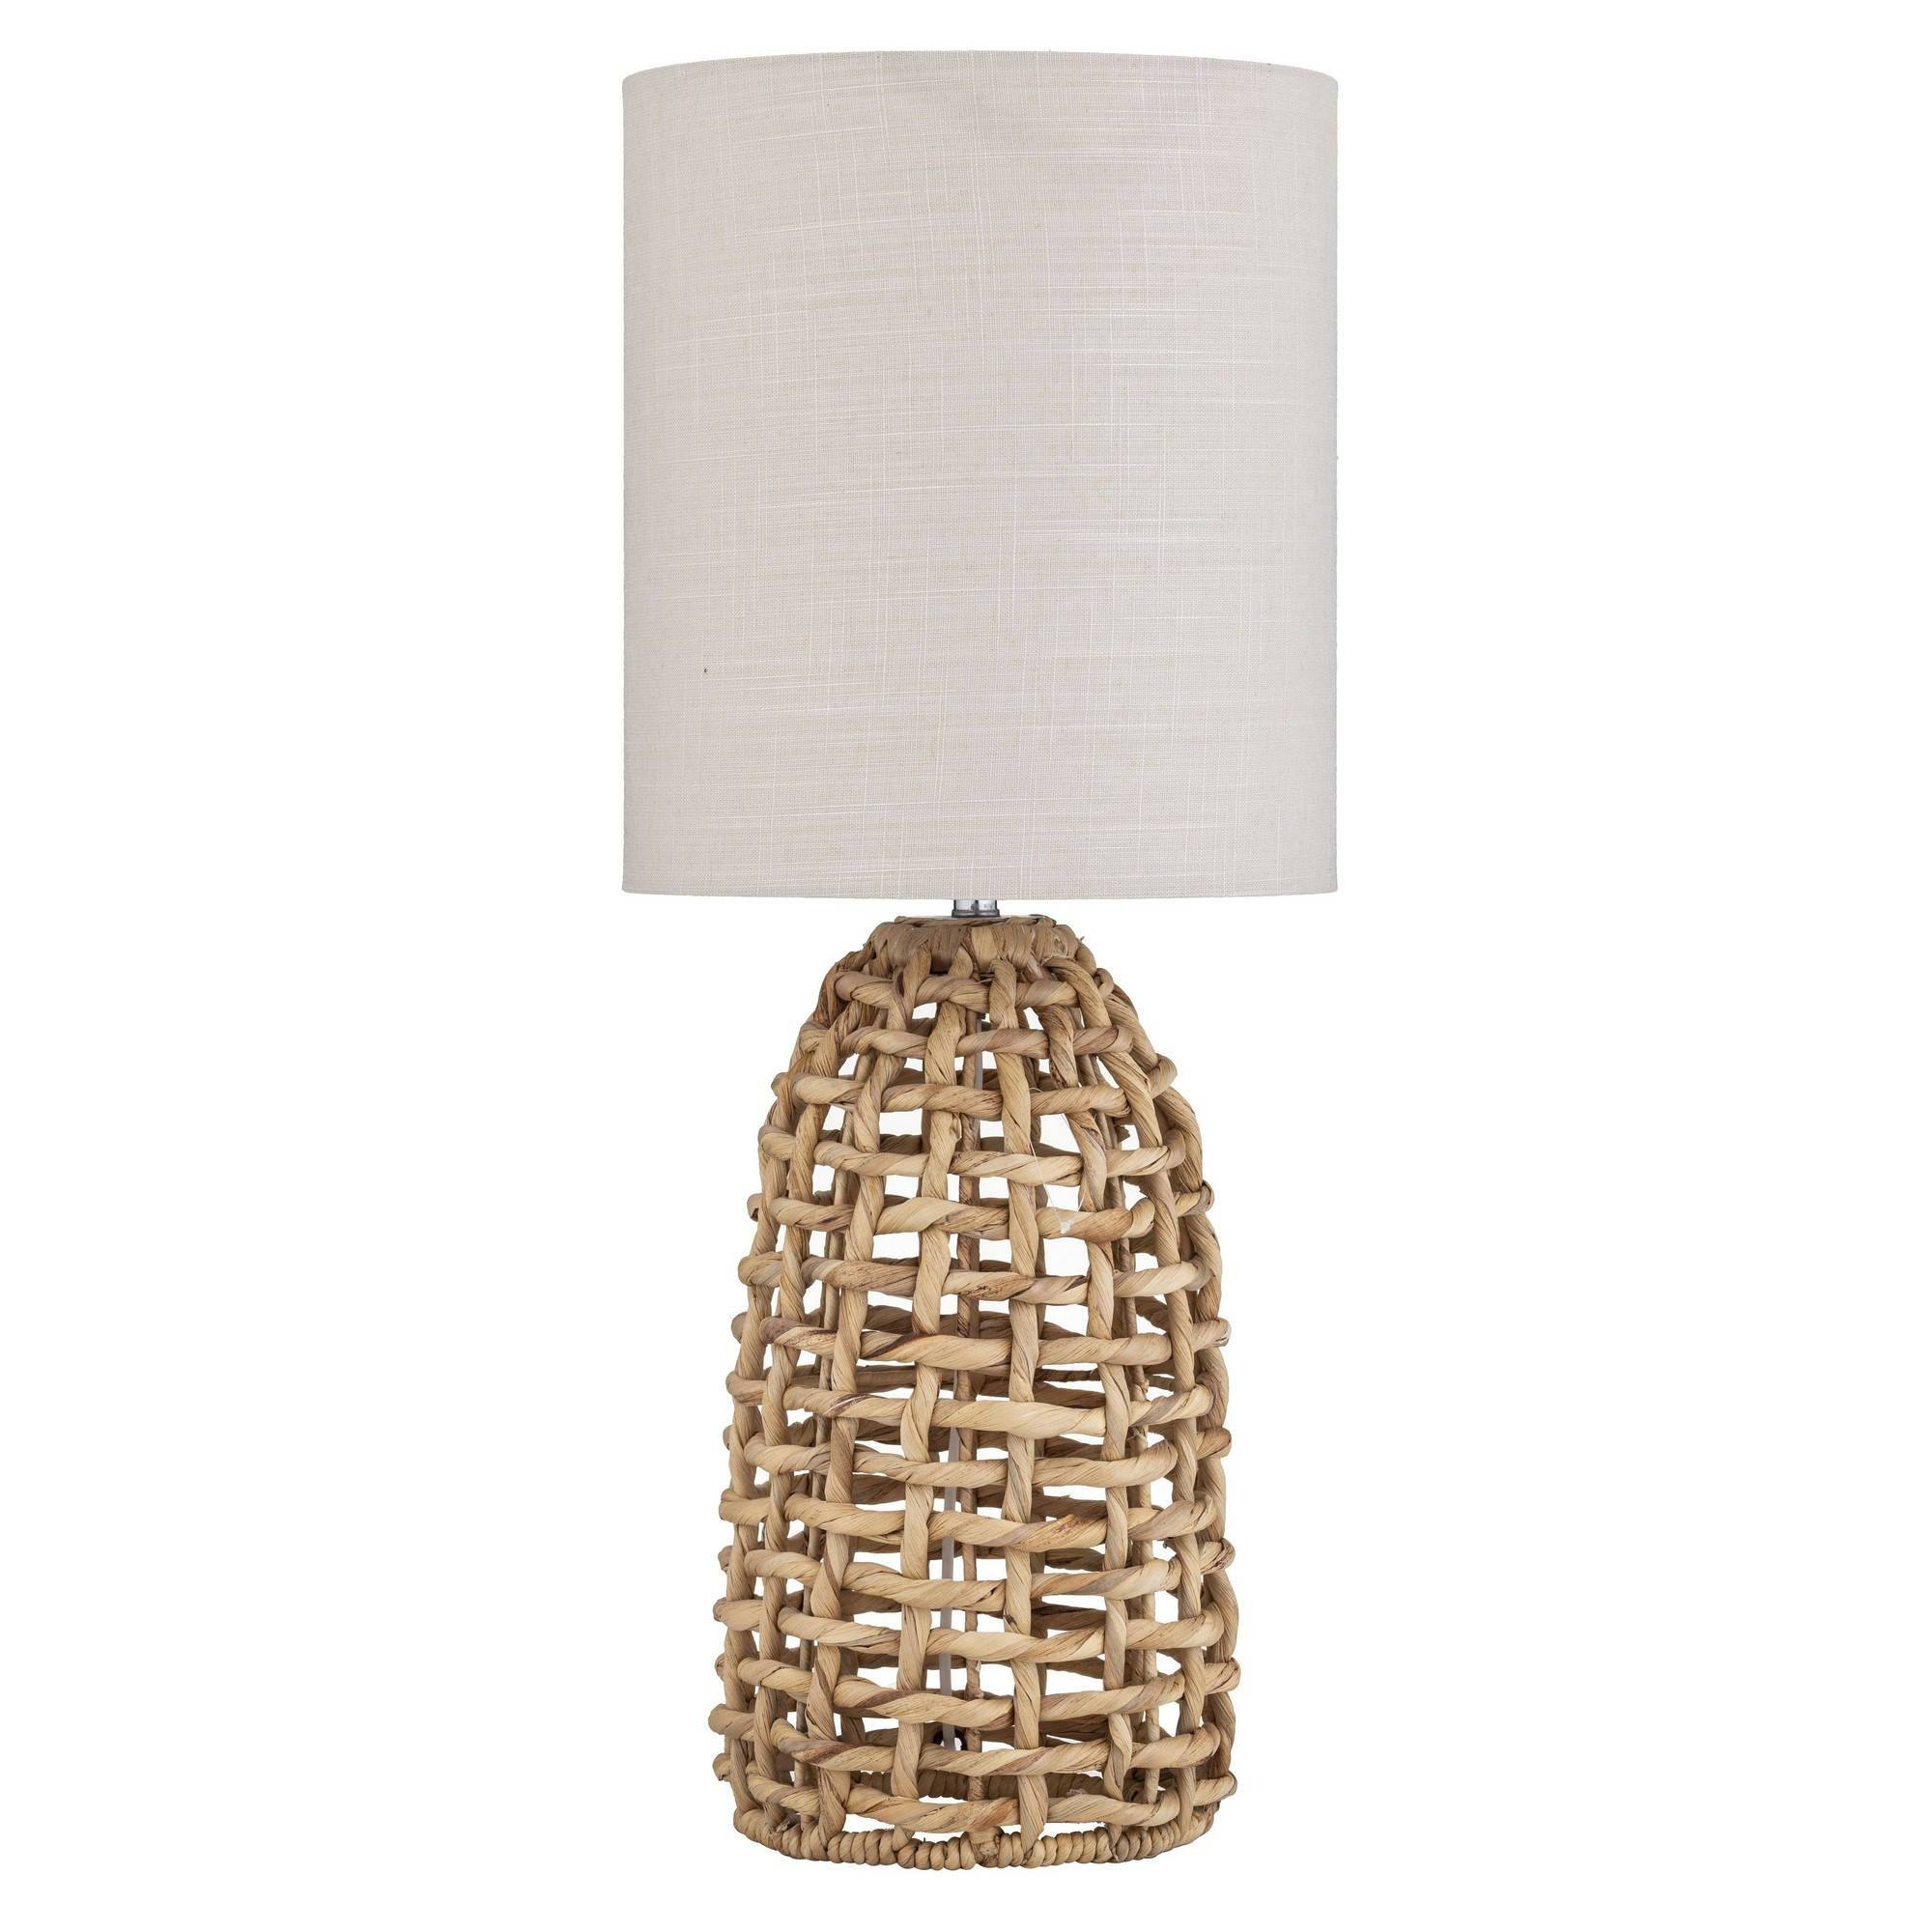 Anguila Water Hyacinth Base Table Lamp